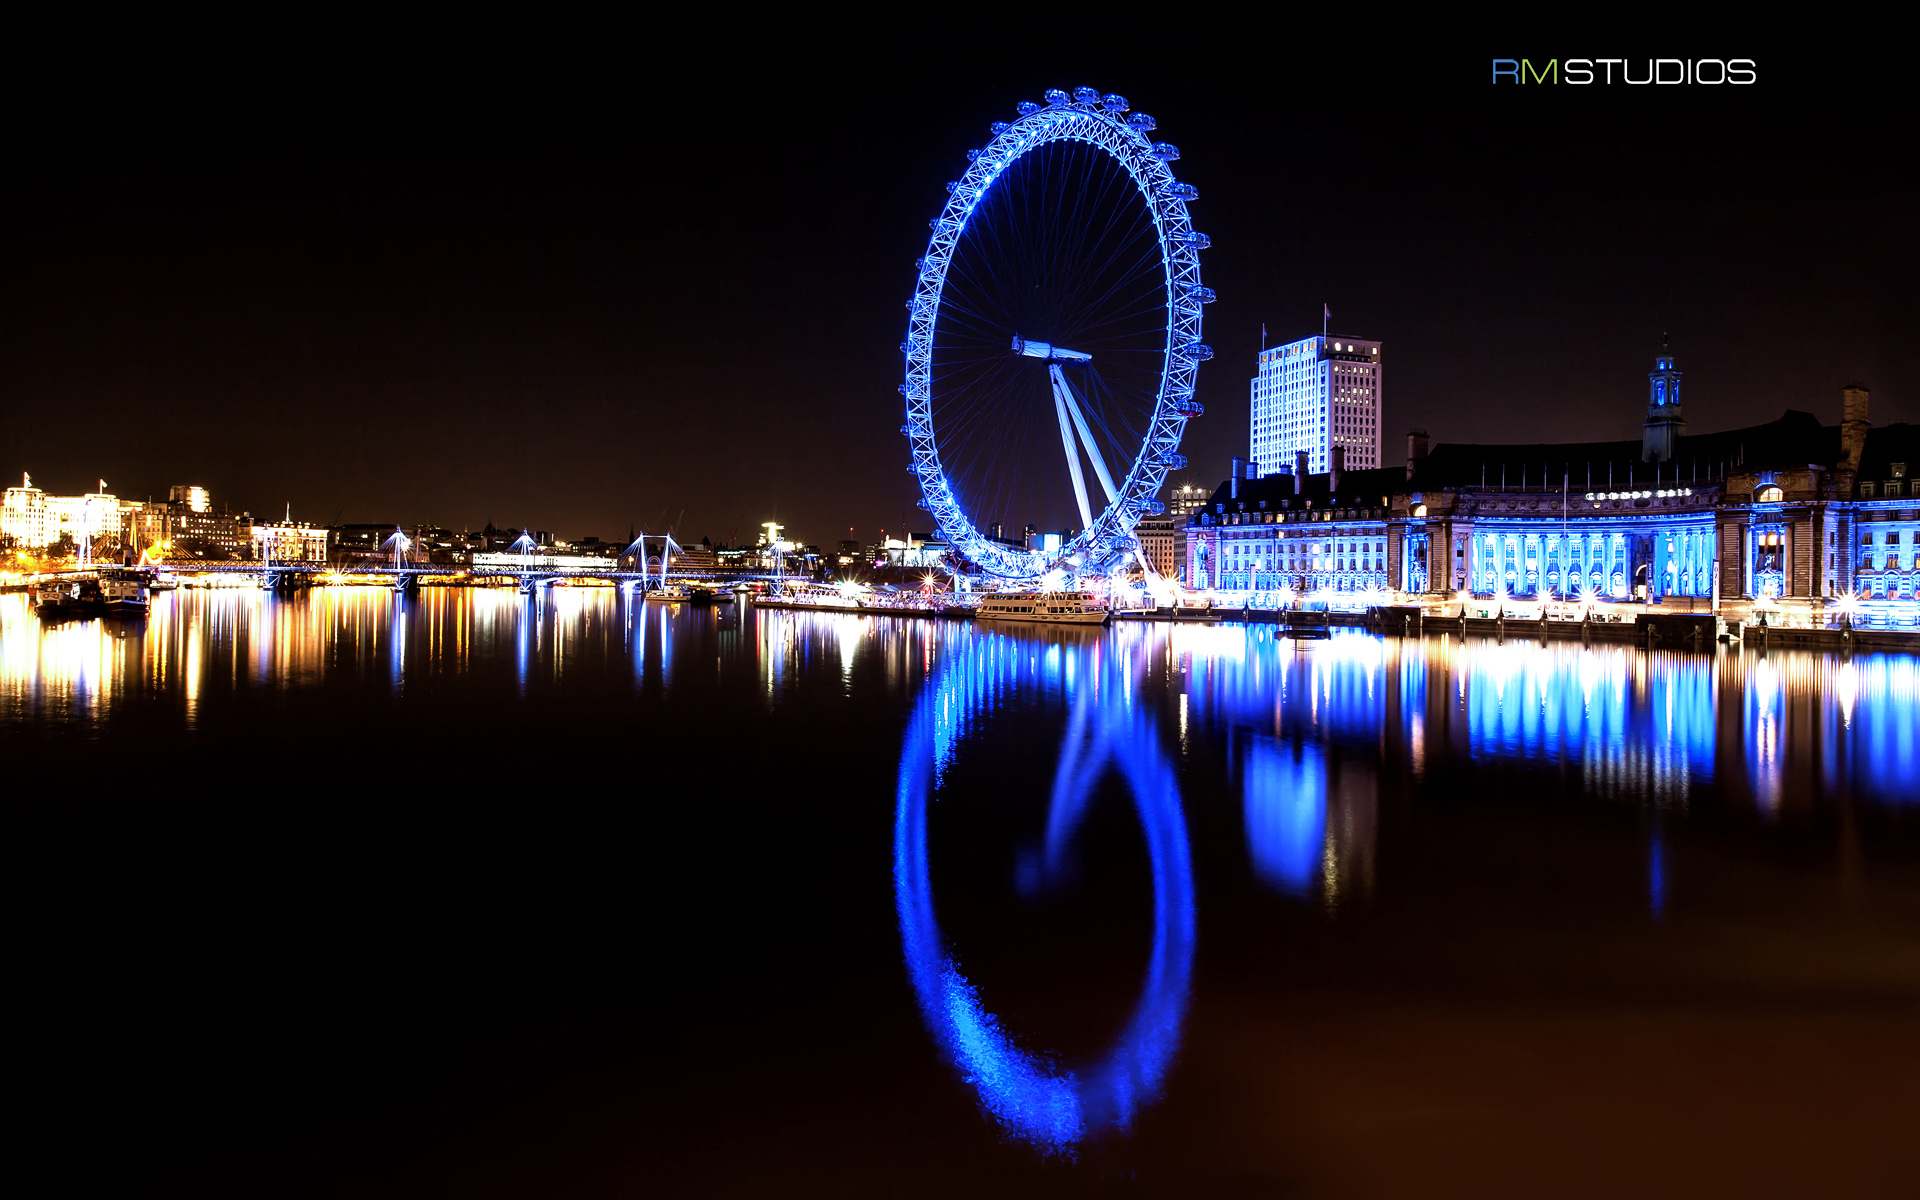 london eye full hd wallpaper and background image | 1920x1200 | id